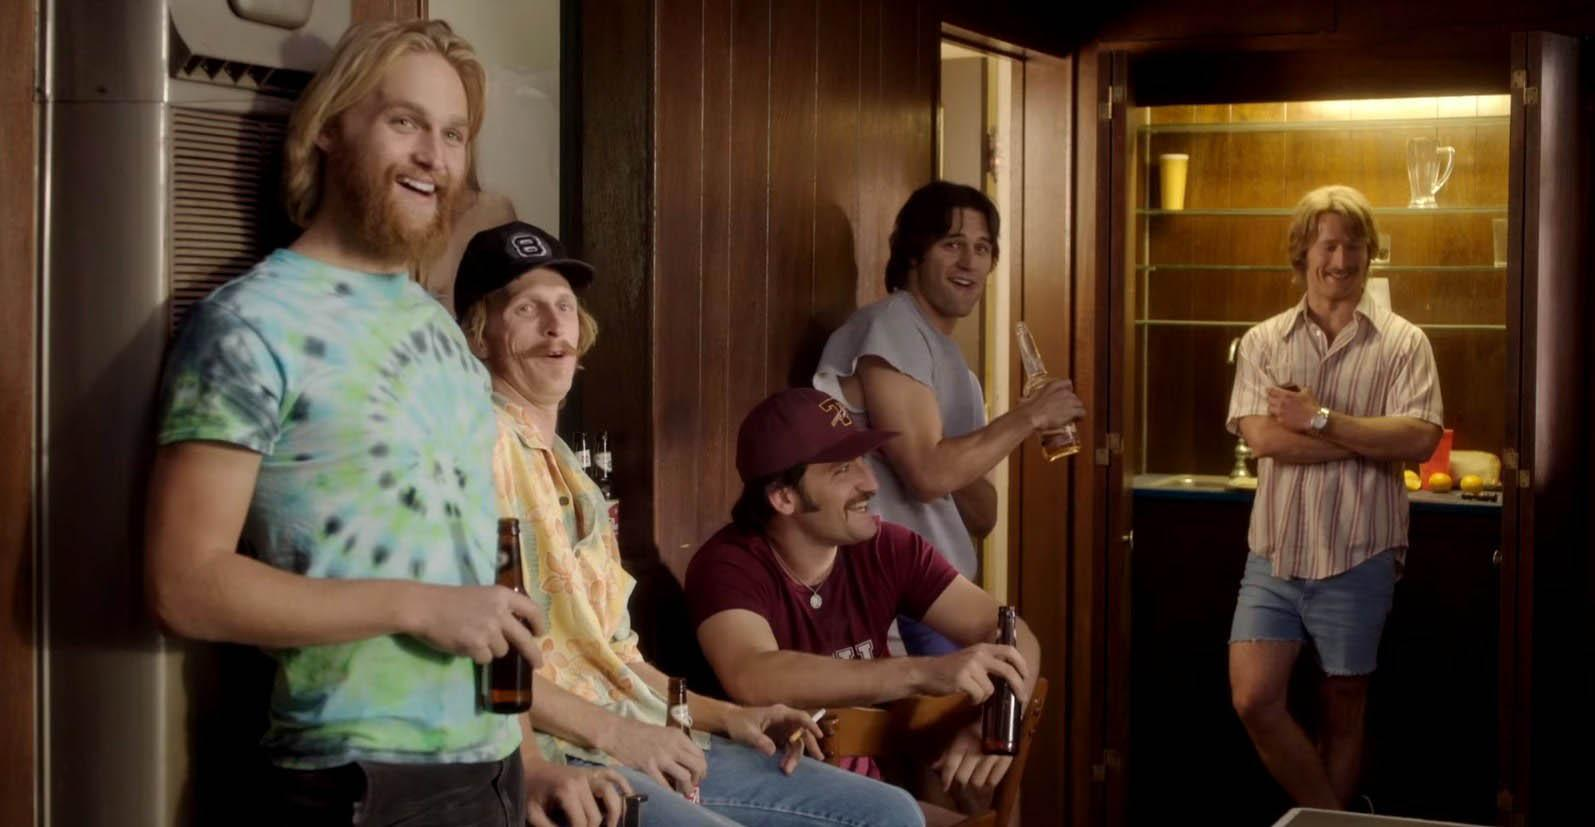 Photo courtesy of Sire mag from Flickr From left, Willoughby (Wyatt Russell), Nesbit (Austin Amelio), Coma (Forrest Vickery), Roper (Ryan Guzman) and Finnegan (Glen Powell) in